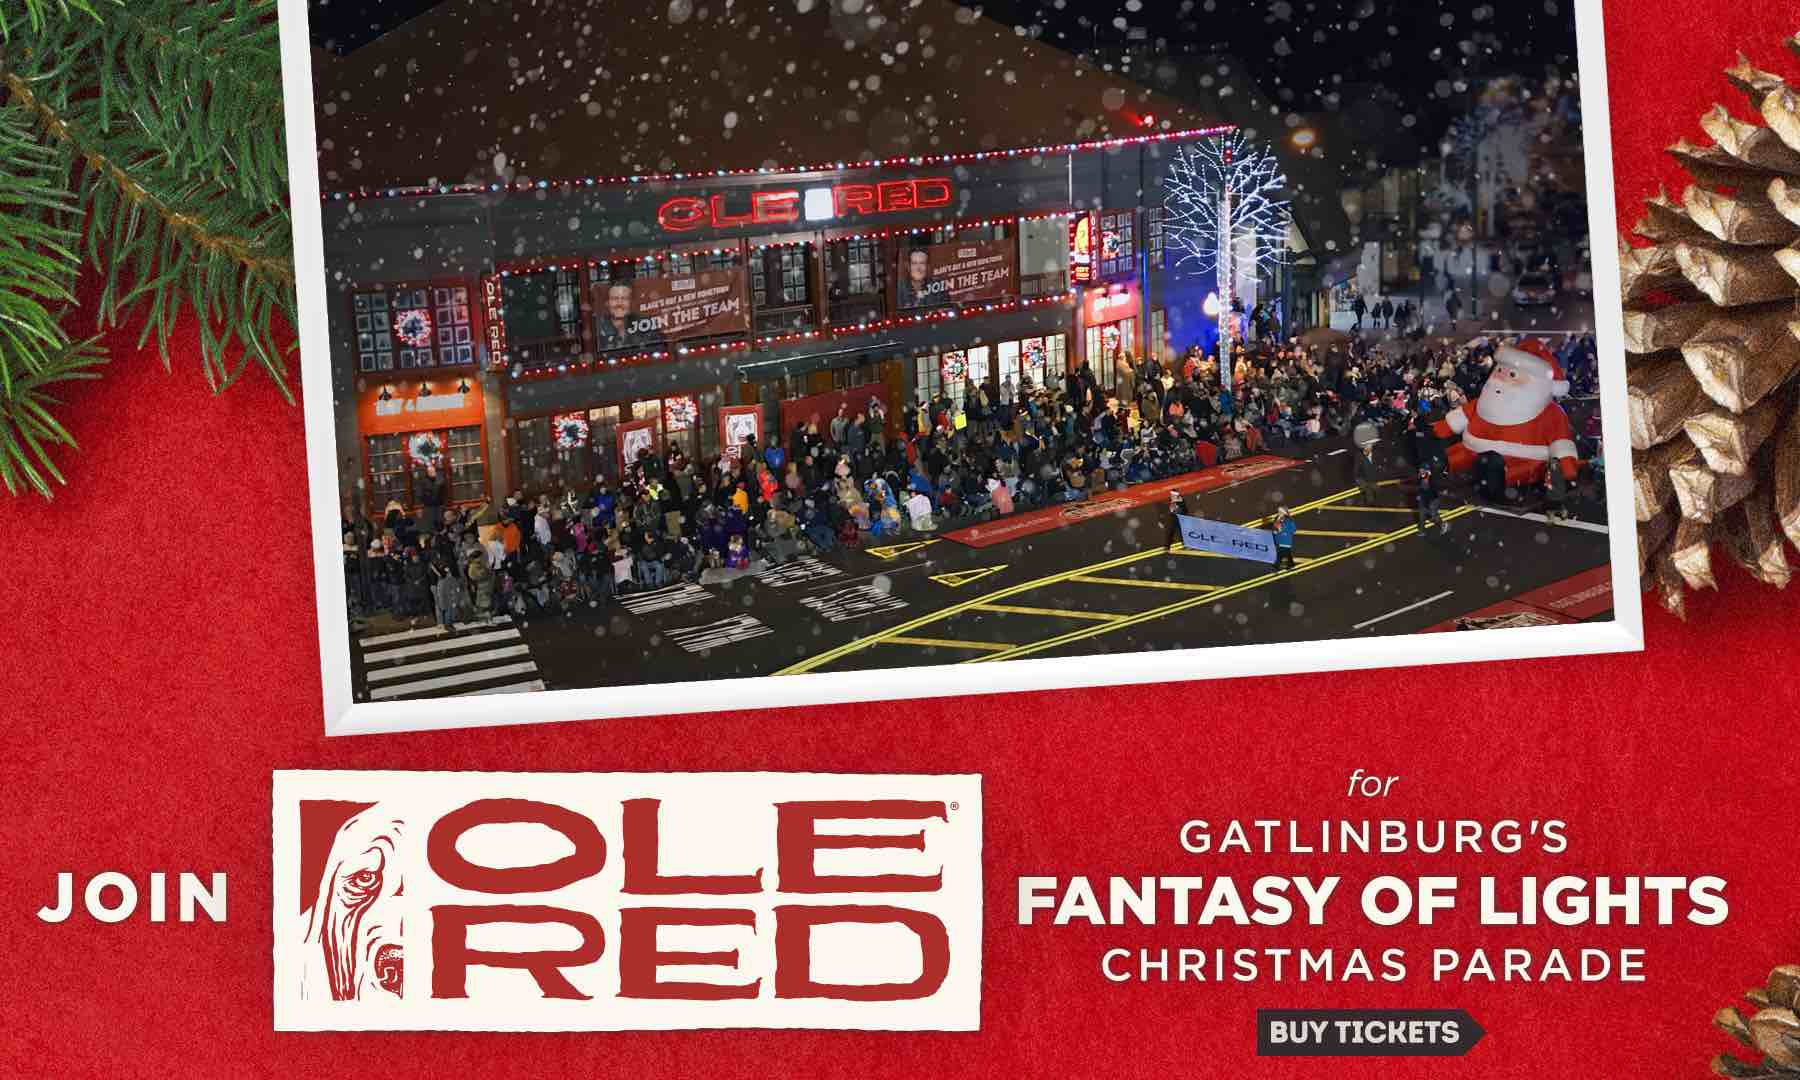 Join Ole Red for Gatlinburg's Fantasy of Lights Christmas Parade - Buy Tickets